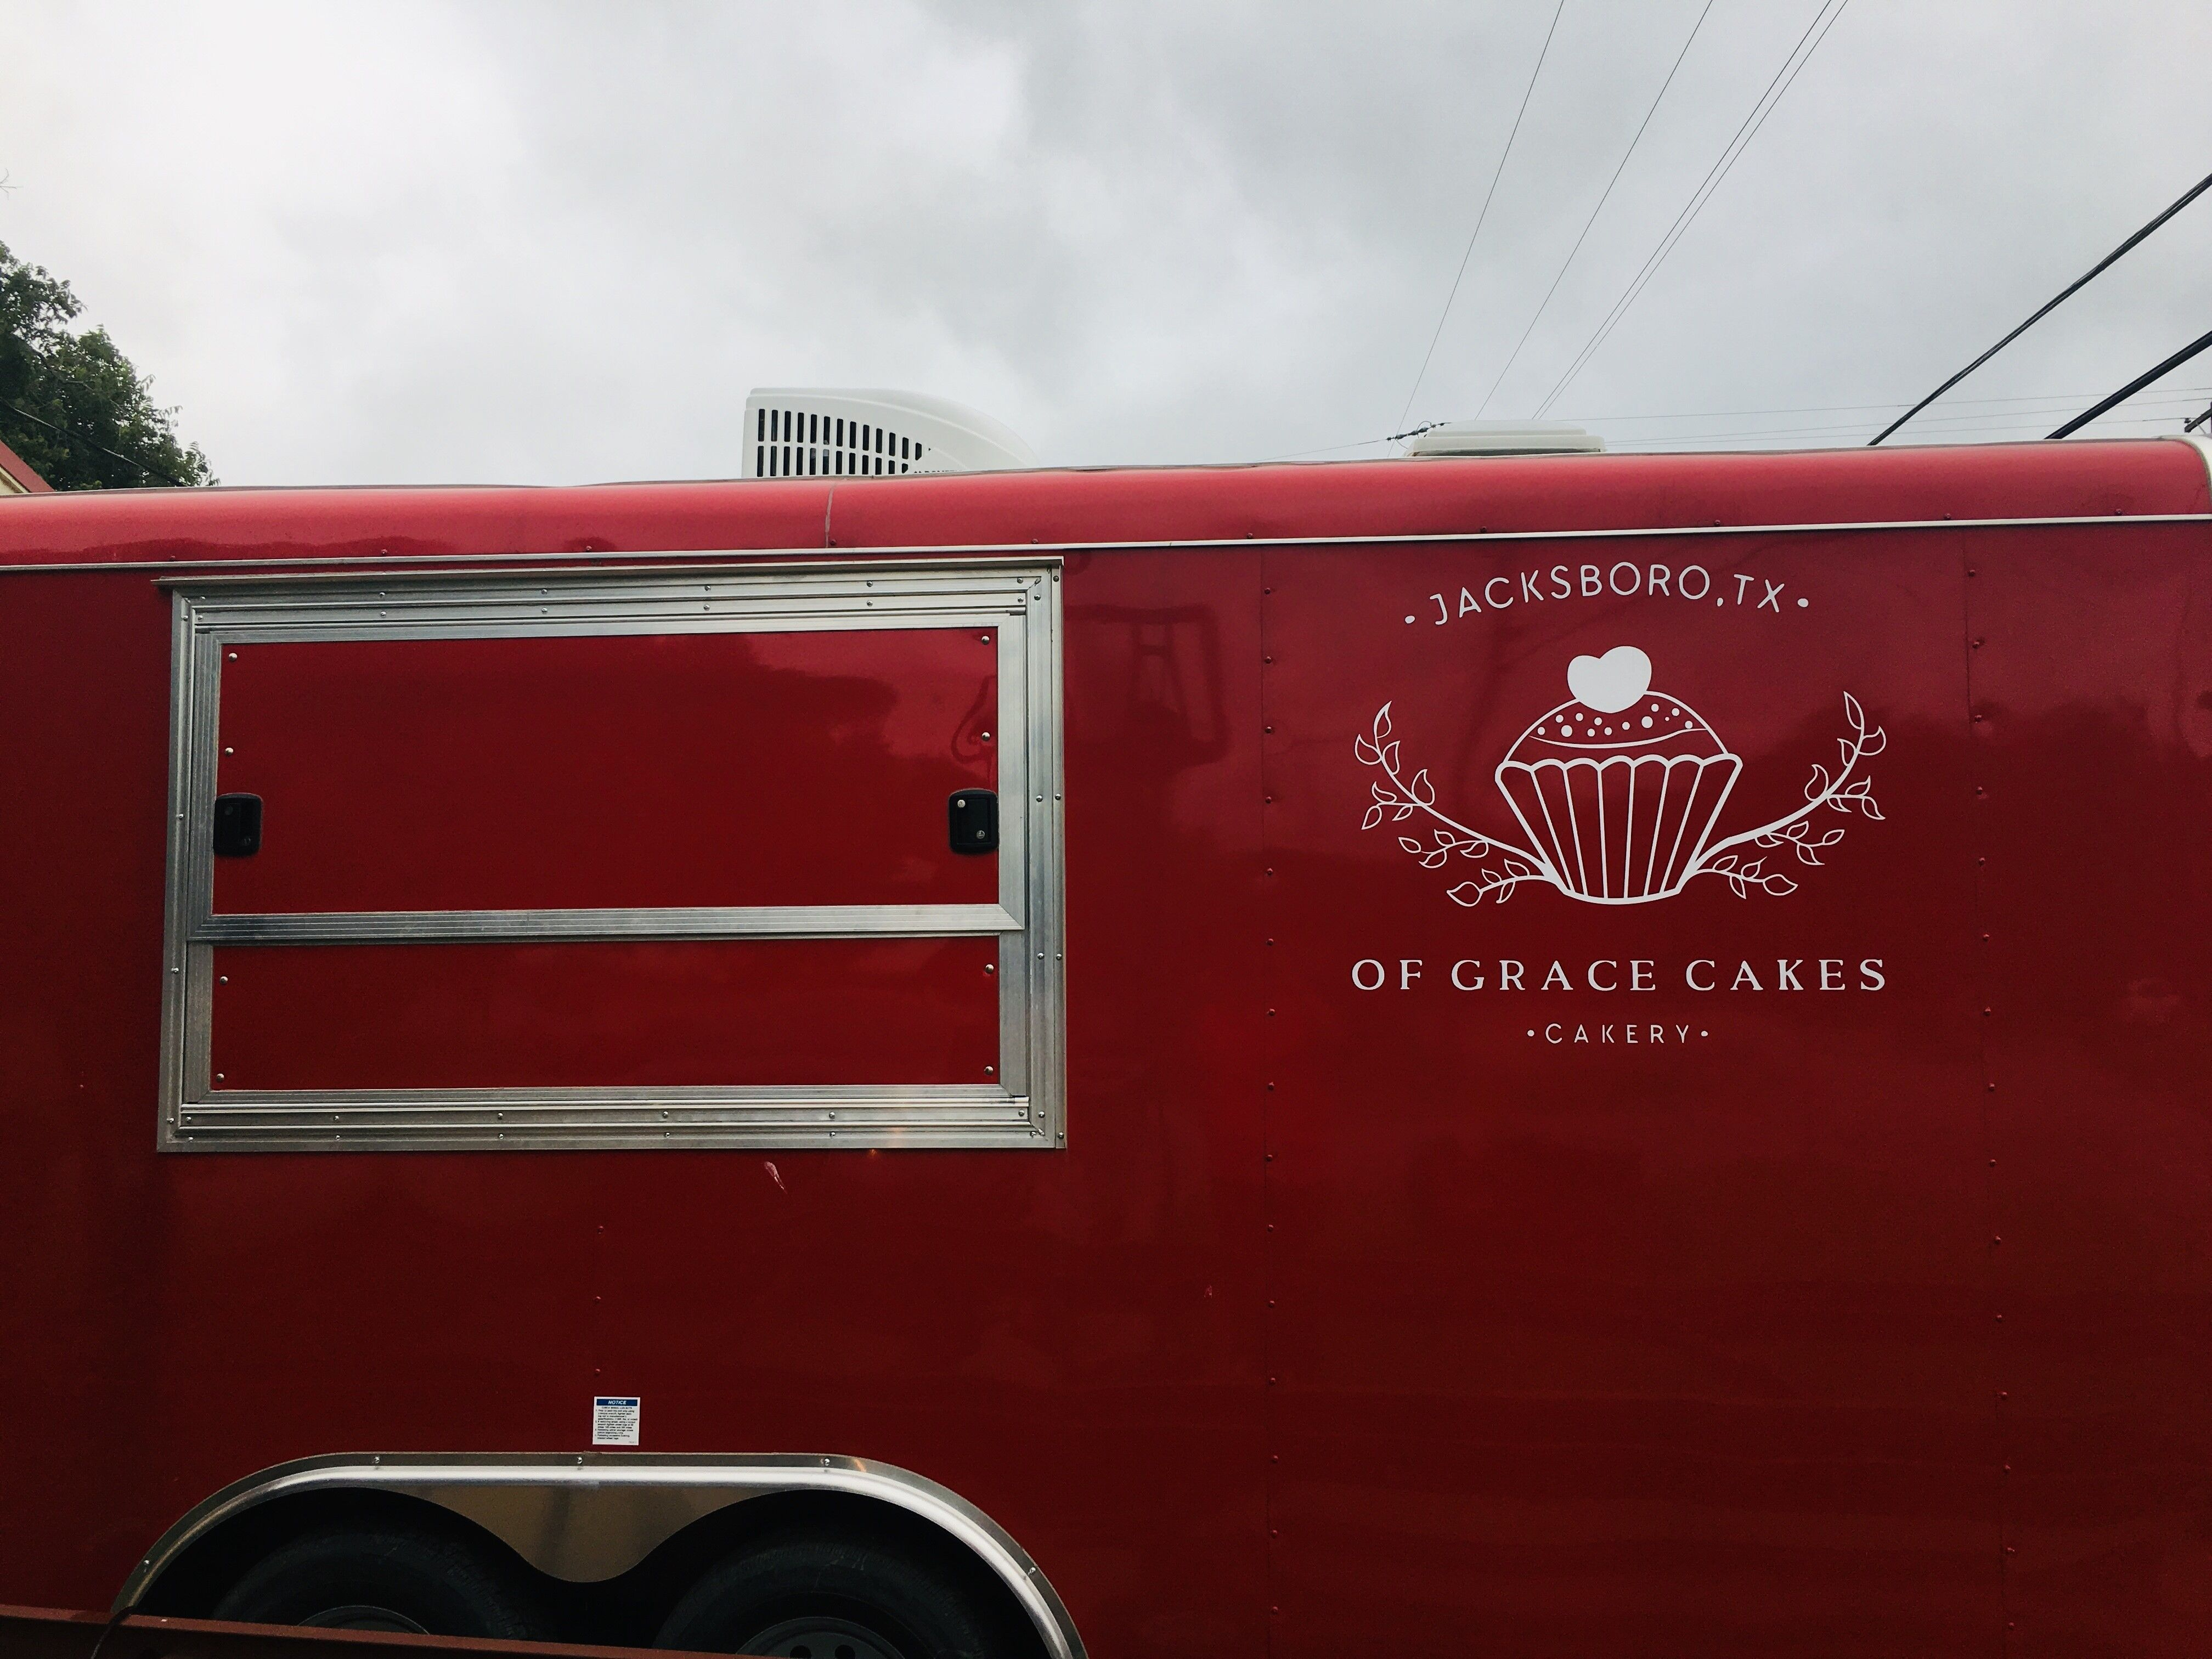 All Grace Cakes